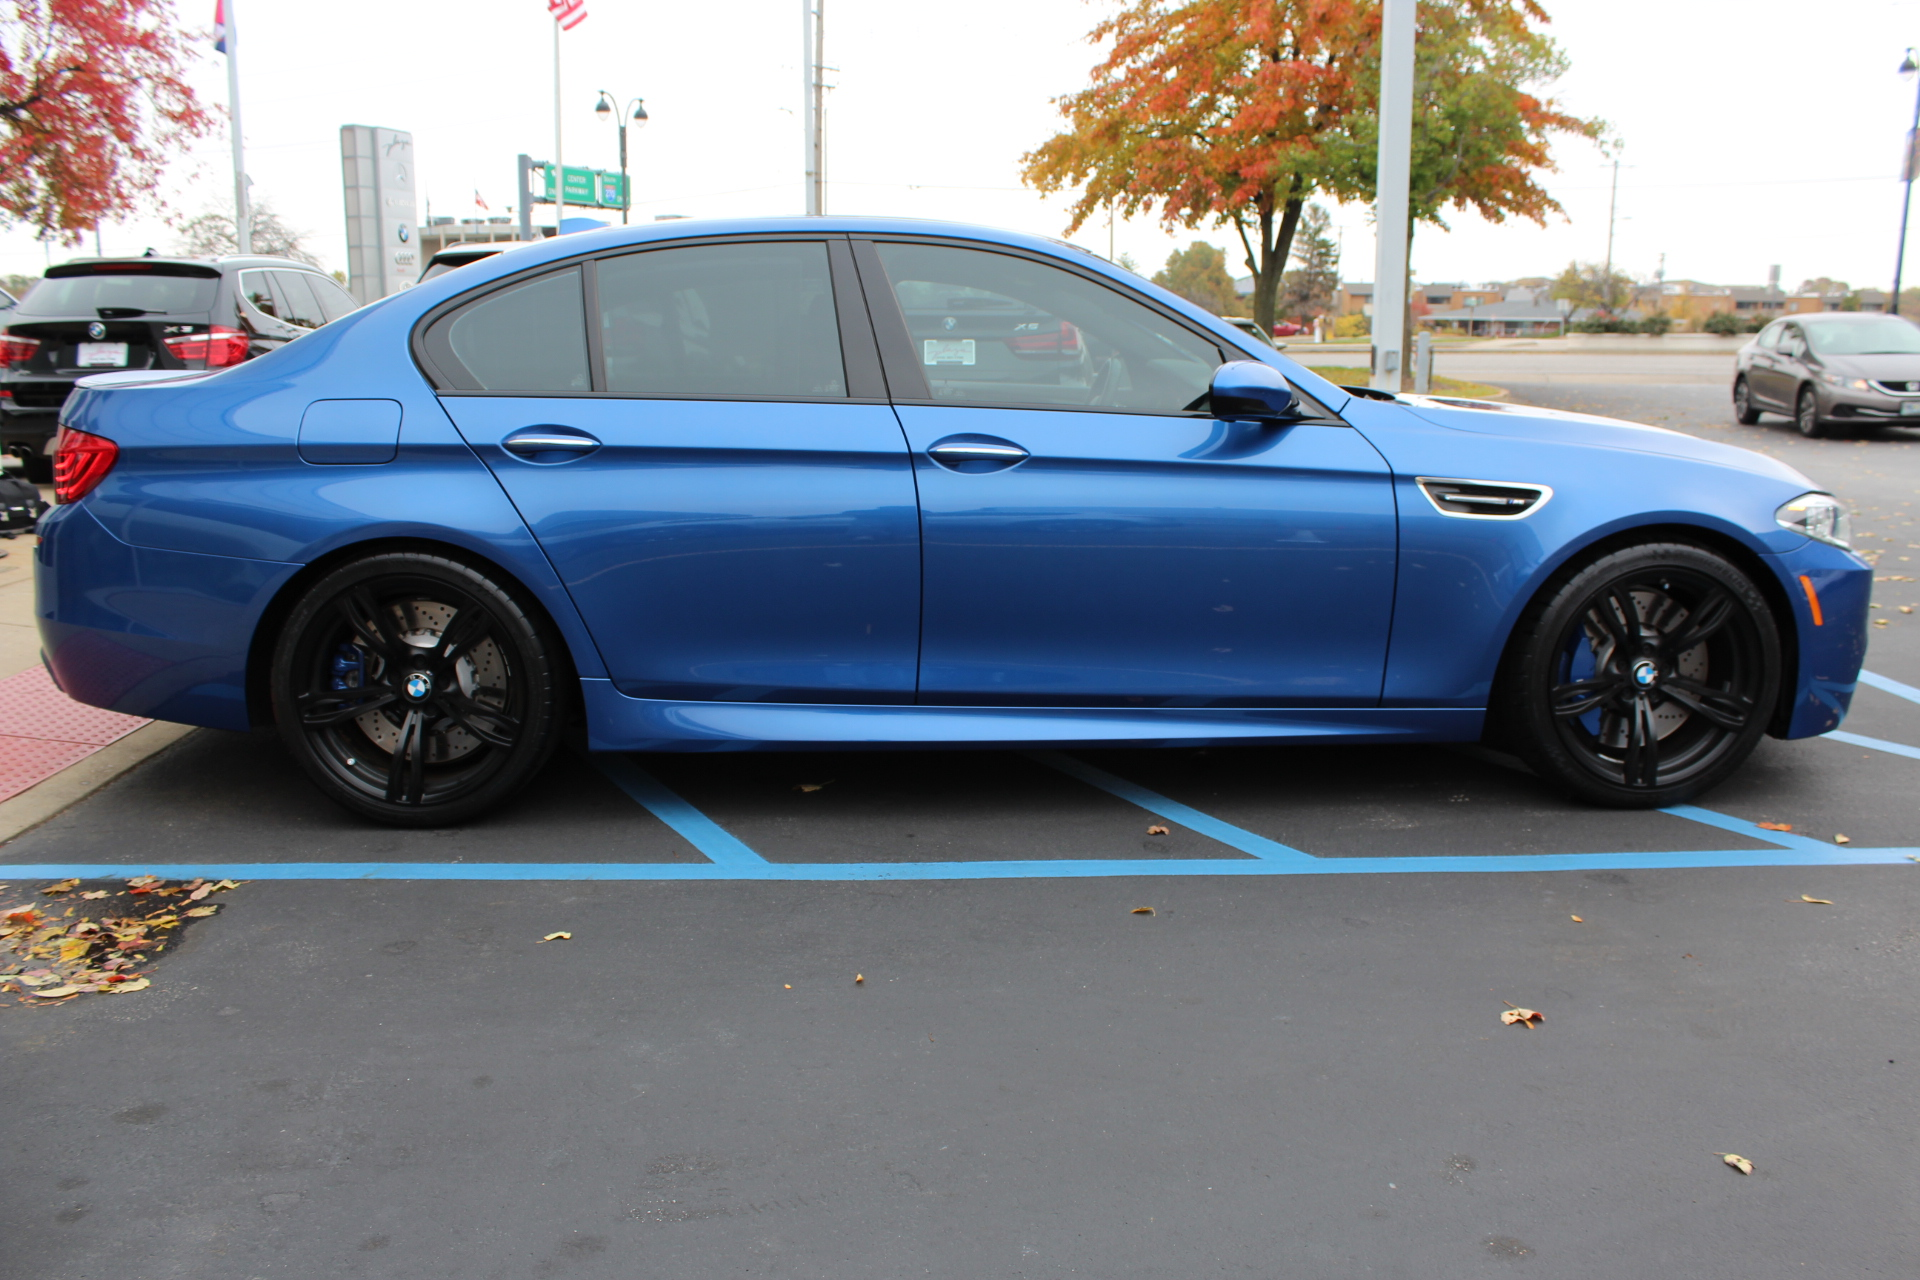 sale near for louis bl mo creve new bmw in st htm coeur